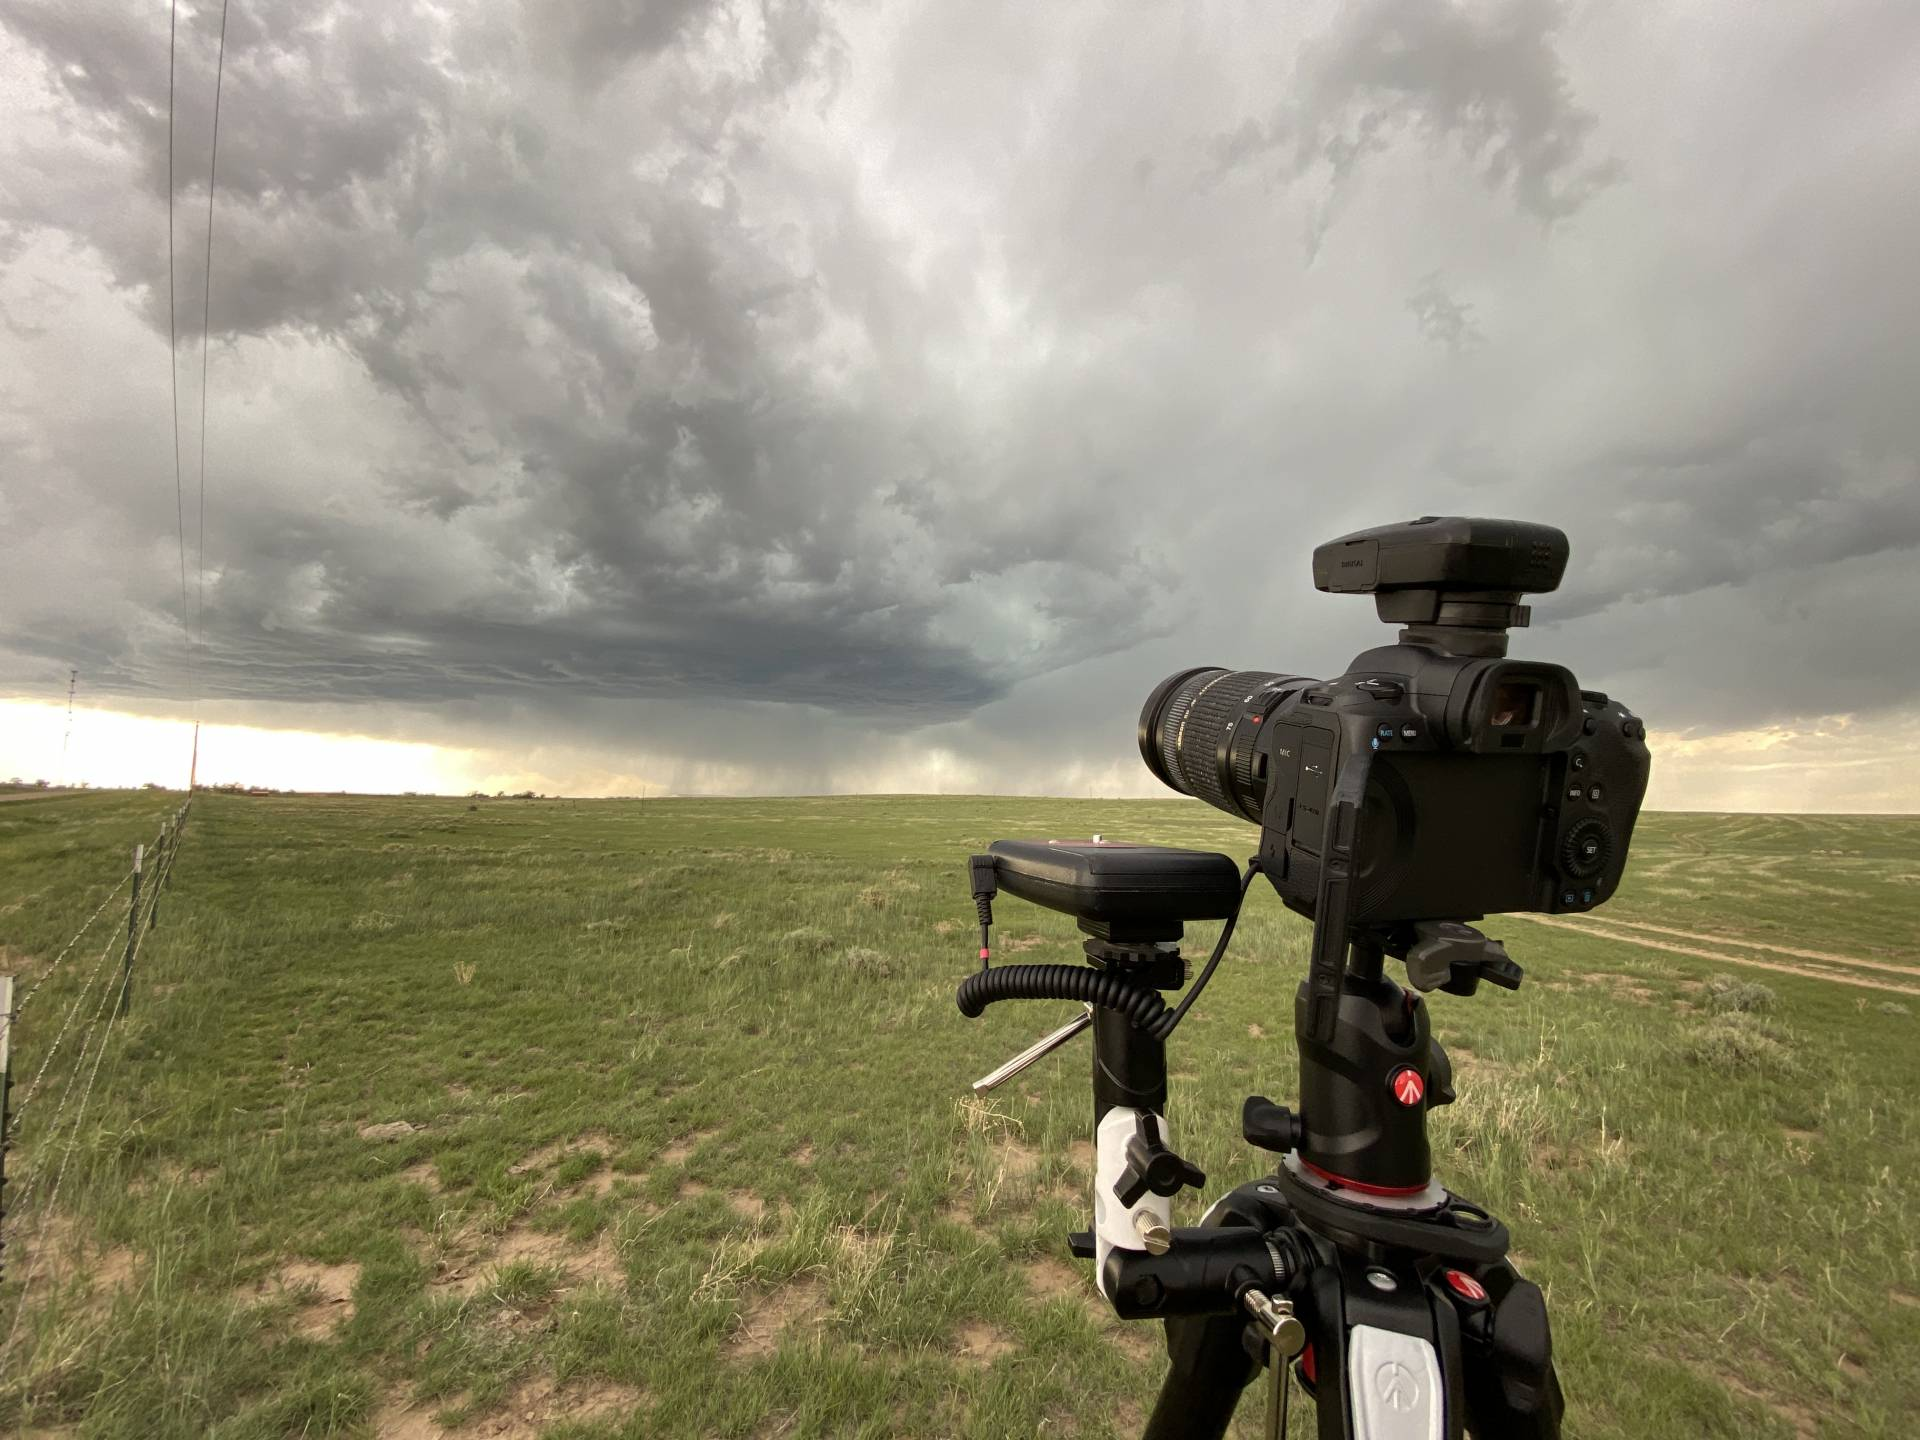 Attempting some lightning shots on this beautiful base near Kim, CO. #cowx